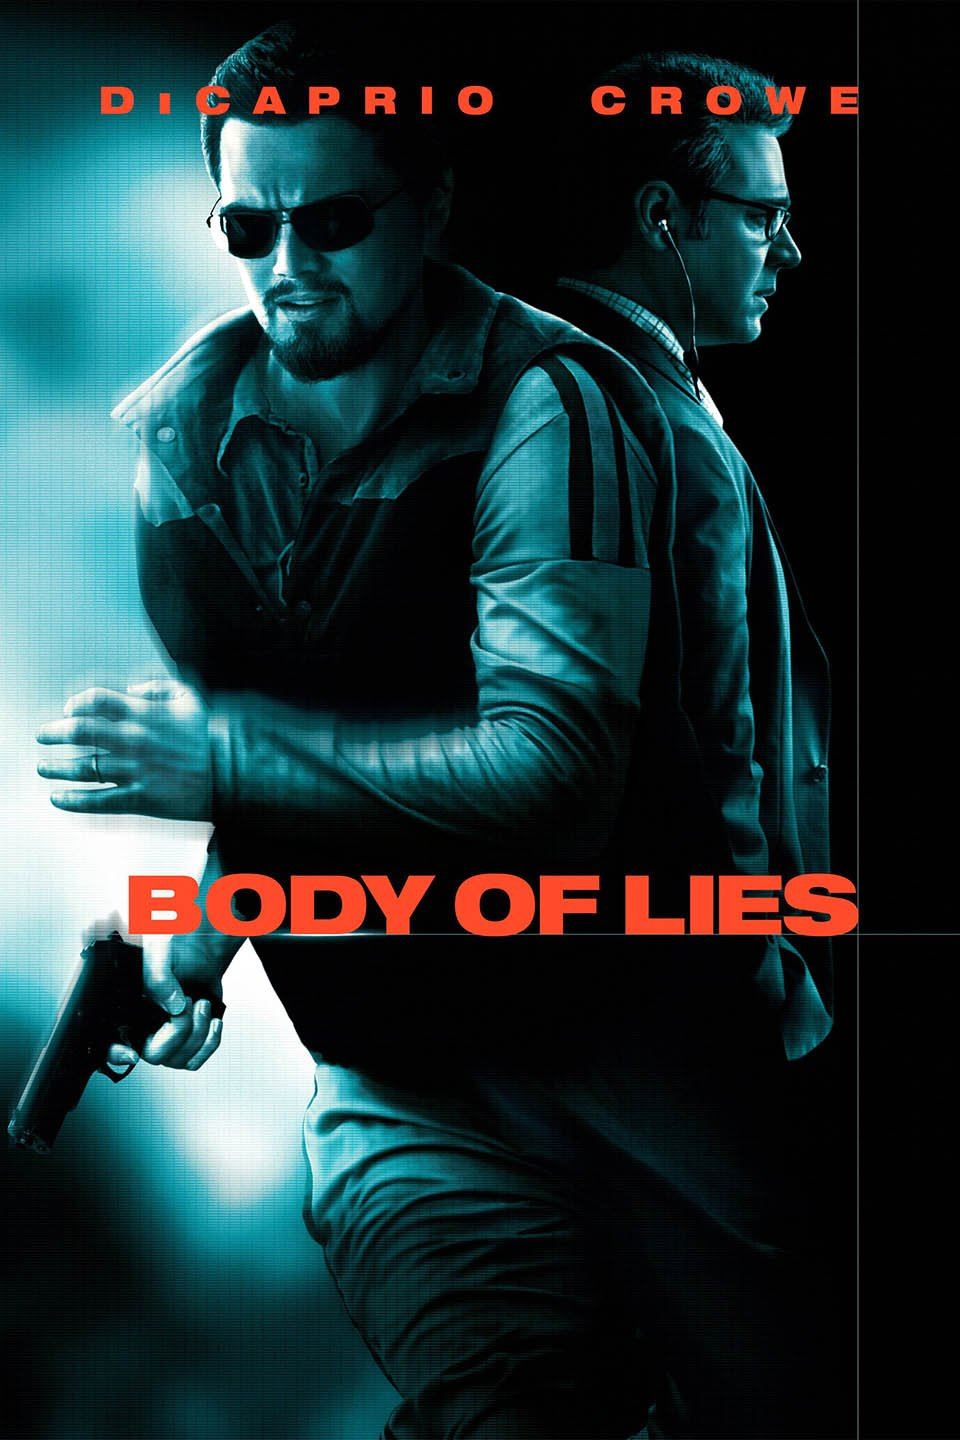 Body of Lies-Body of Lies